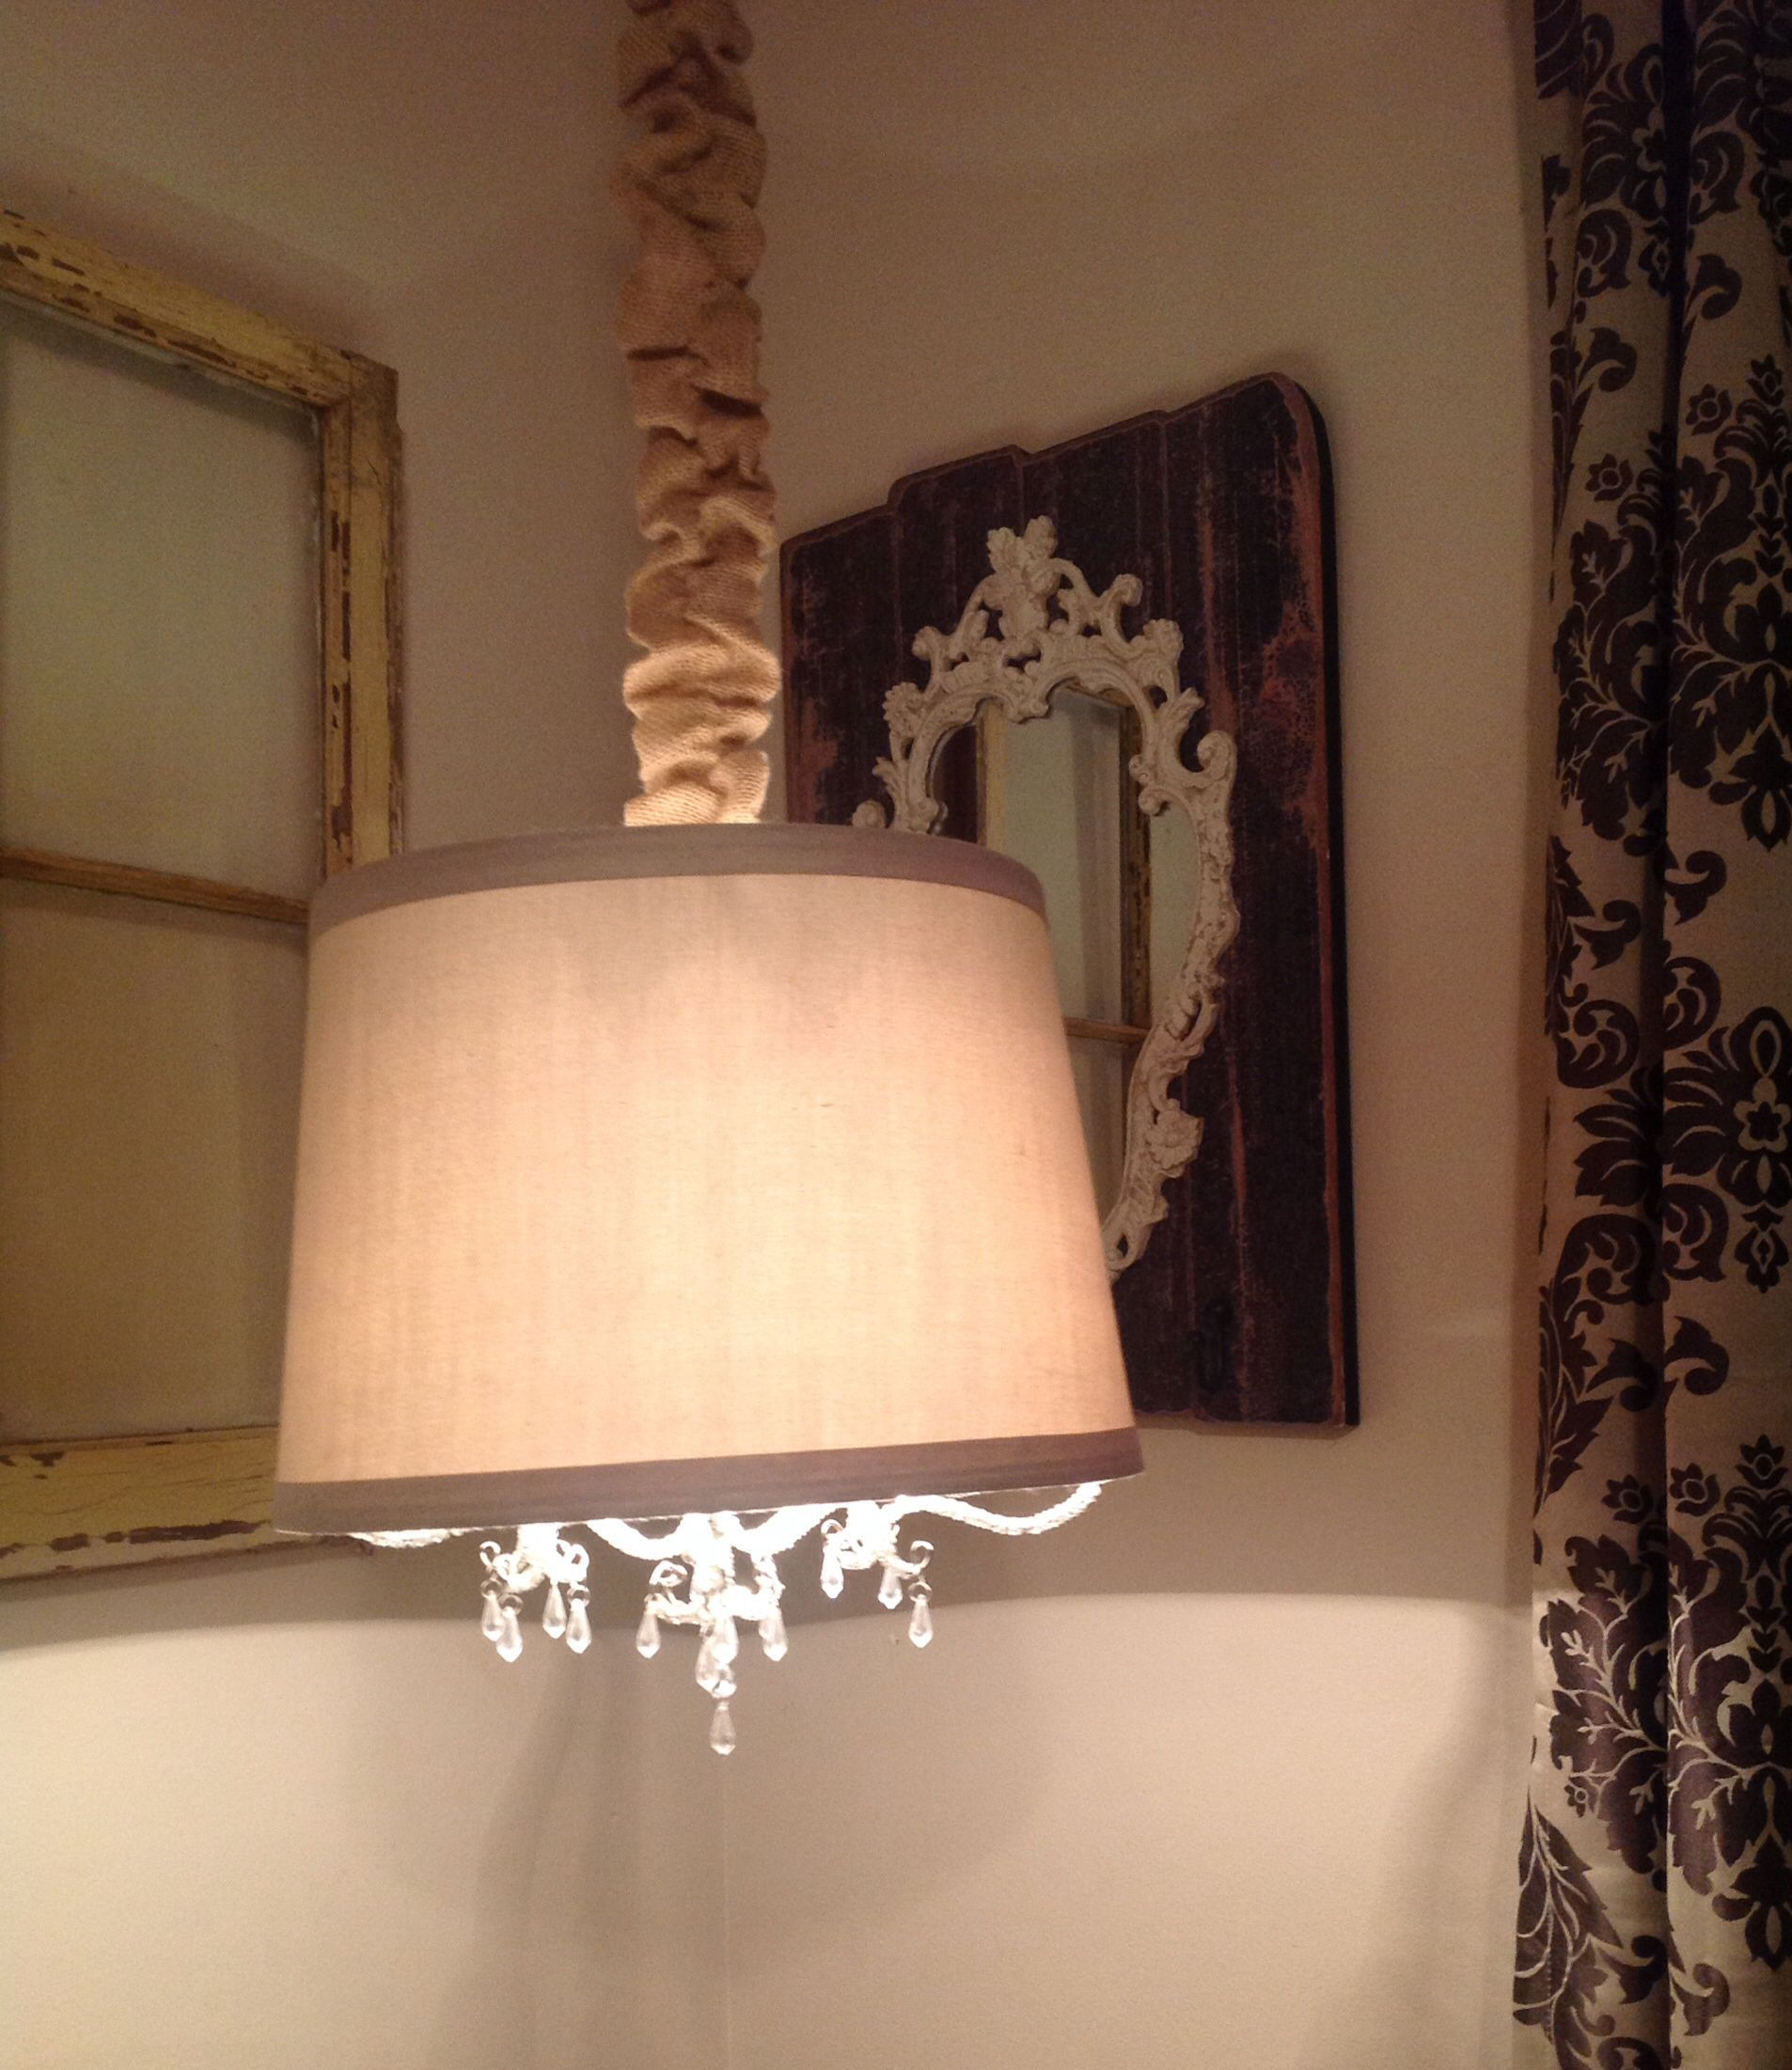 I Made This Drum Shade Chandelier Out Of A Table Lamp Shade